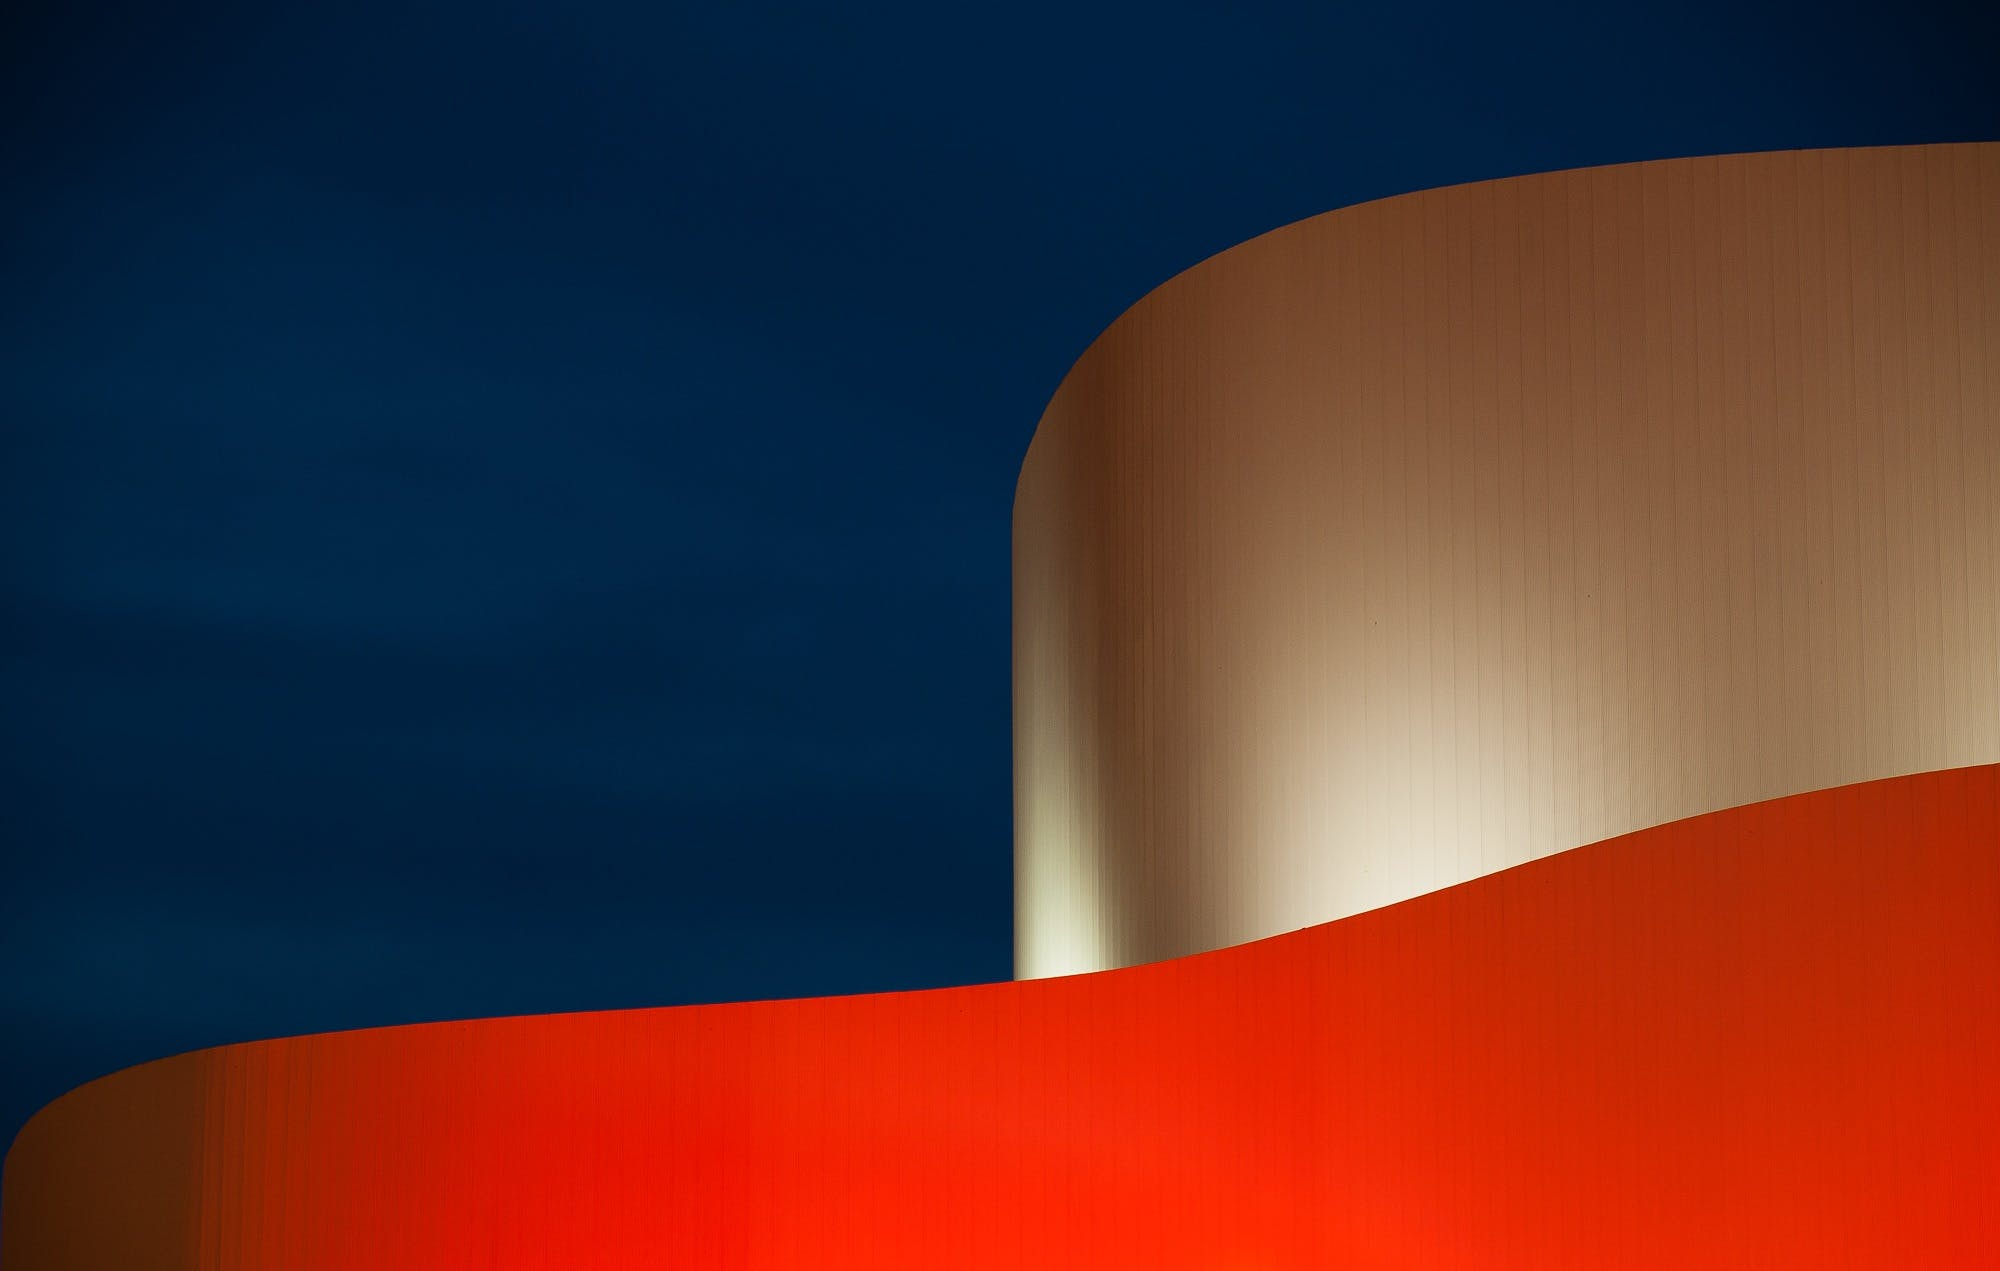 abstract, architecture, art